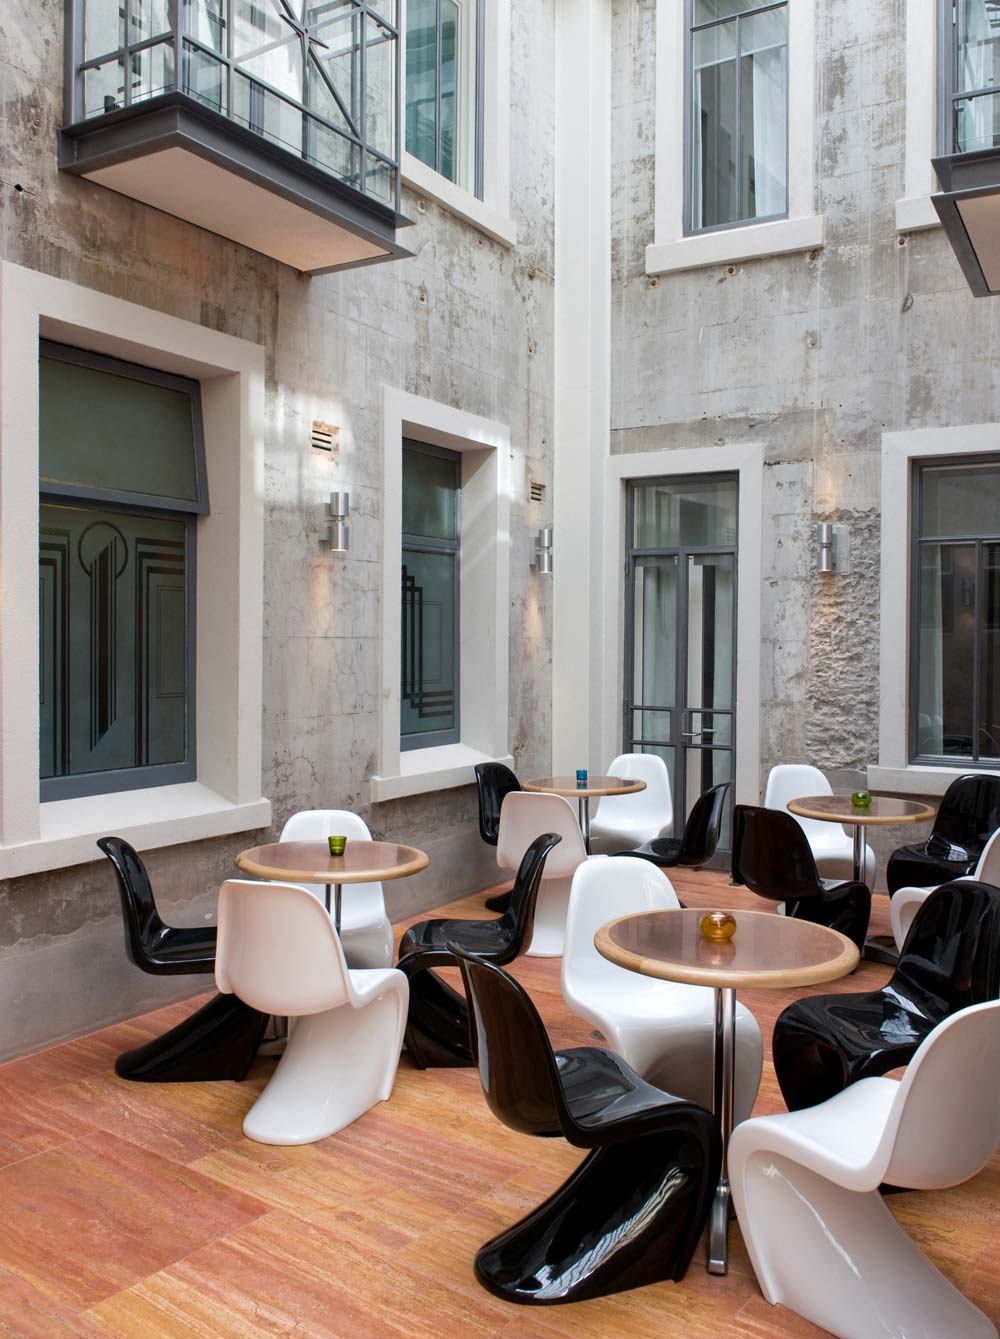 Courtyard at of Hotel DeBrett Auckland